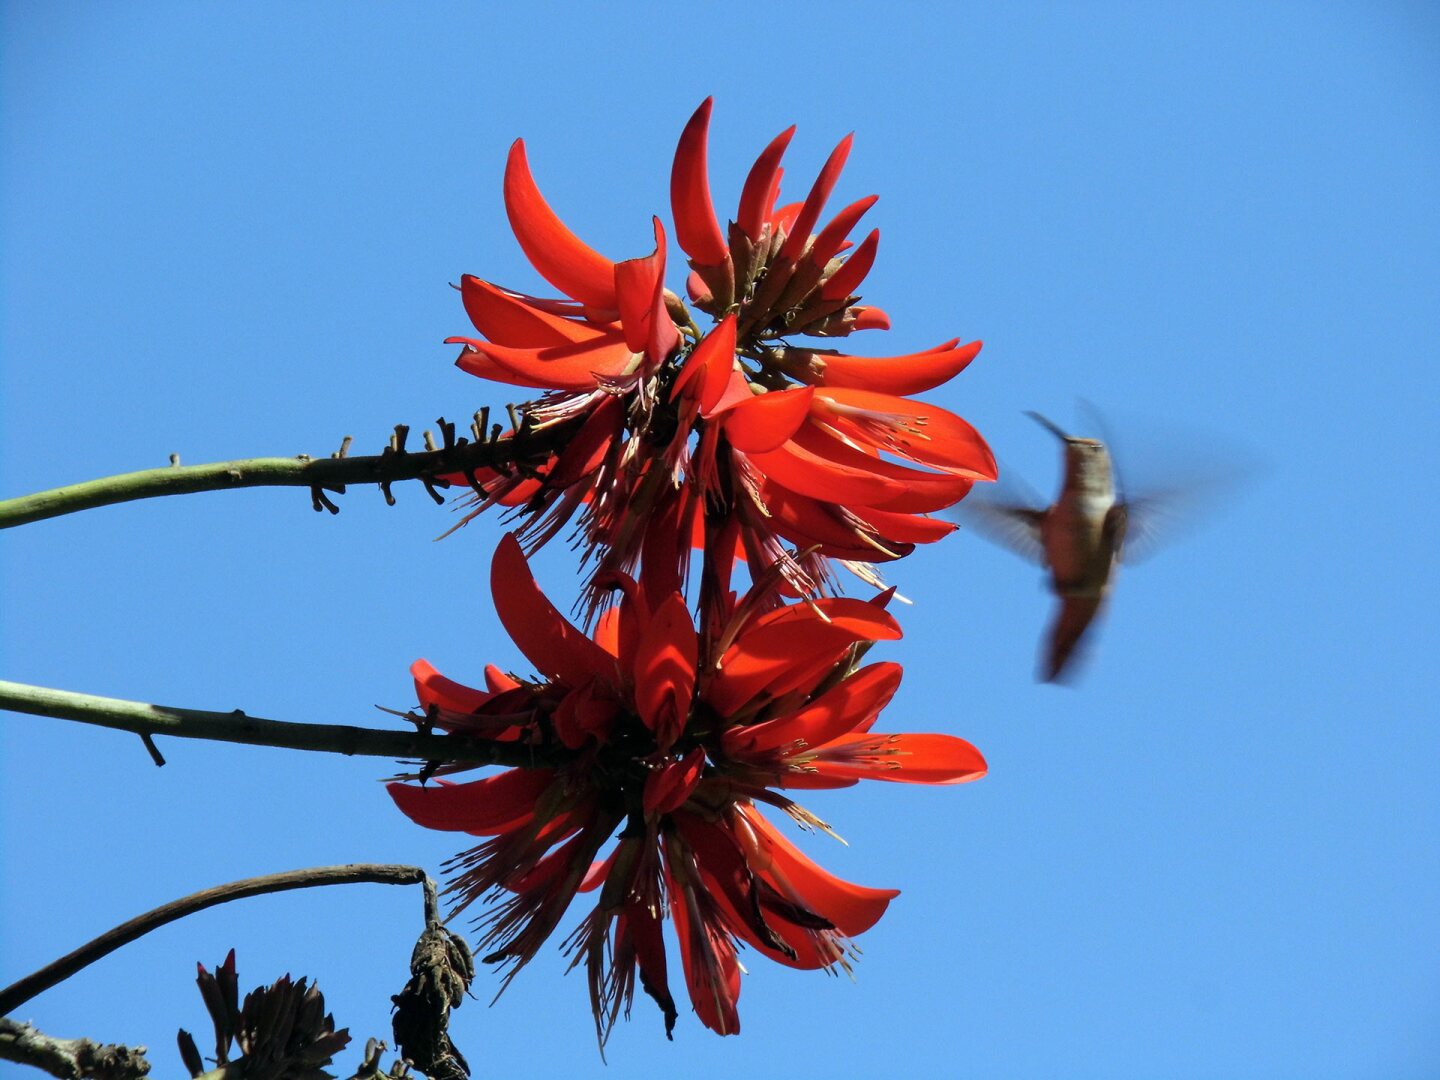 A hummingbird flies near a coral tree flower. | Sandi Hemmerlein